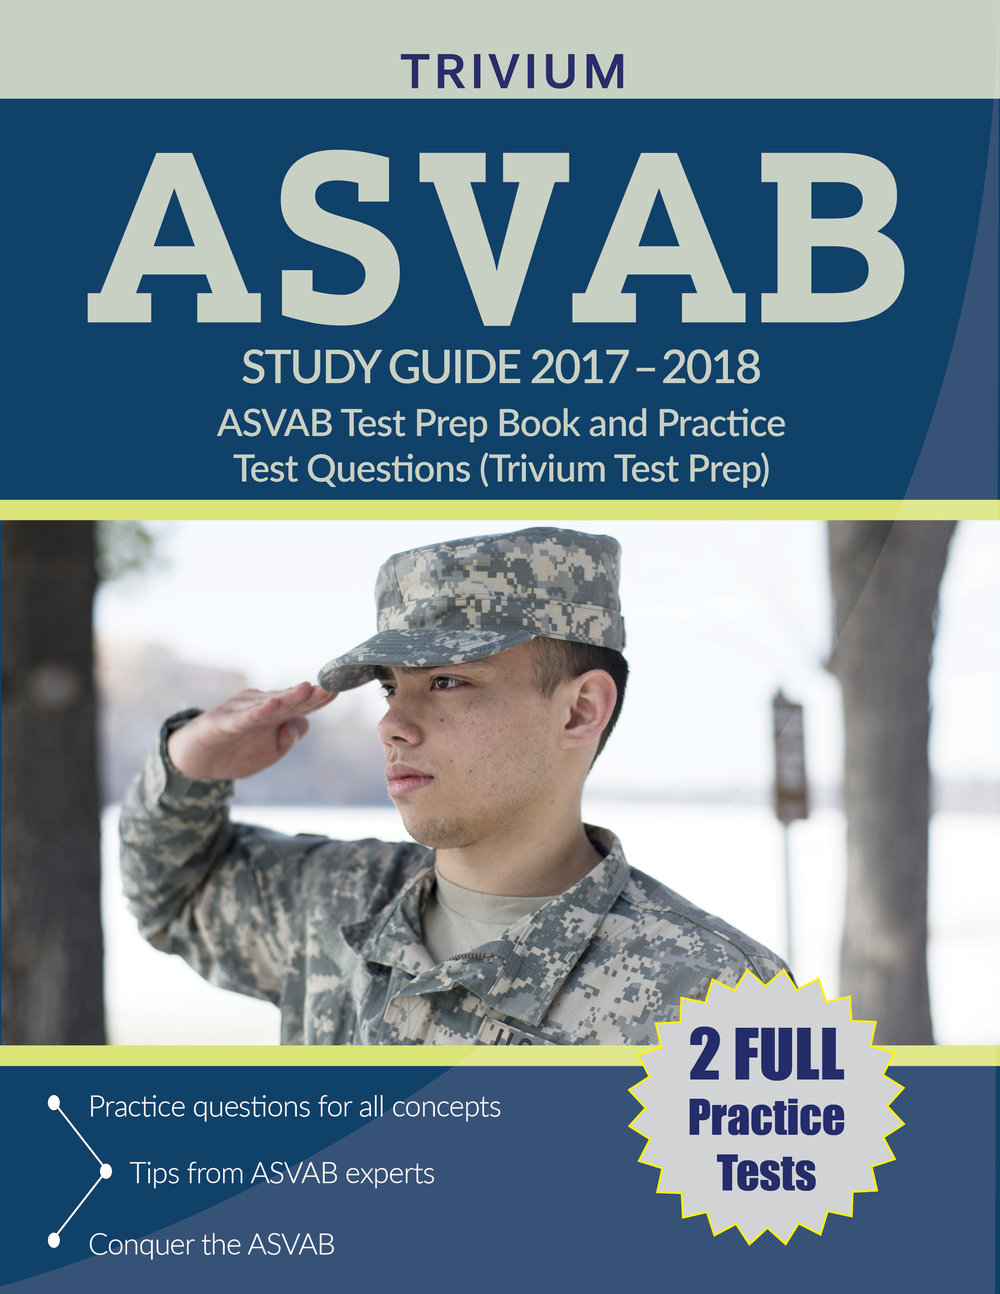 ASVAB_cover_website.jpg